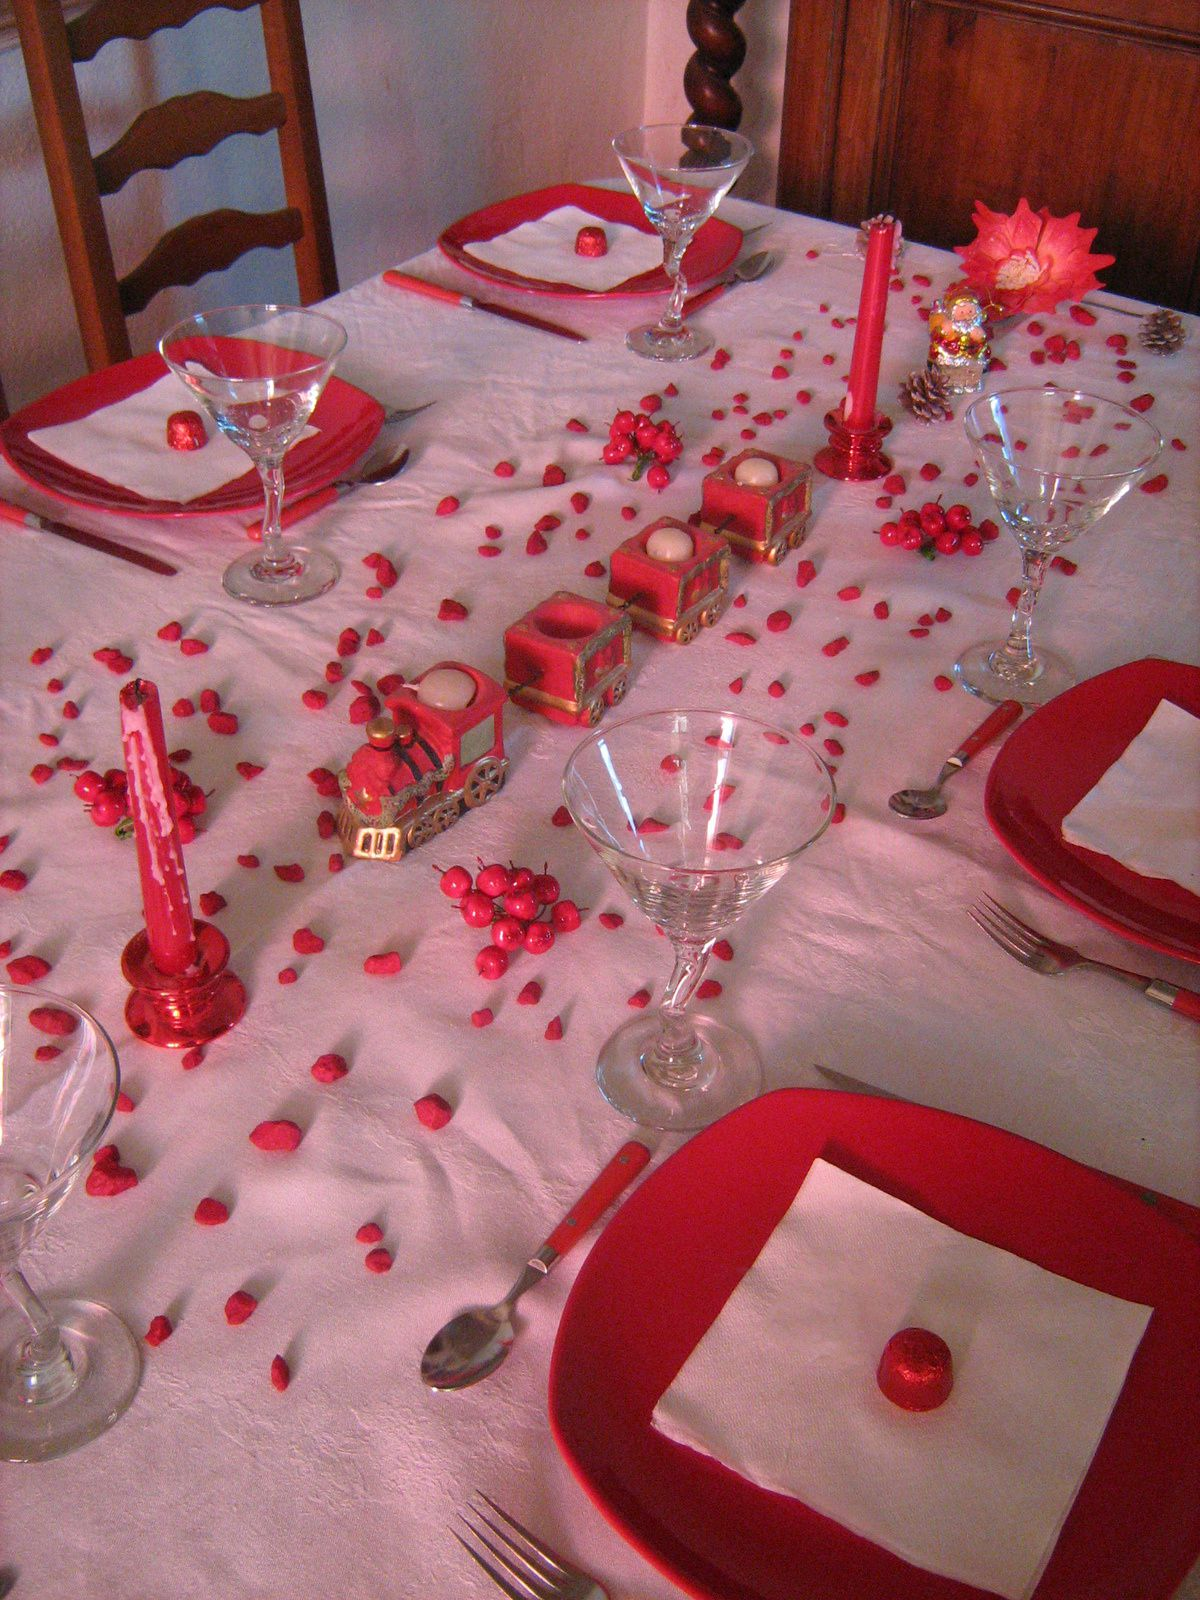 Table de noel en rouge et blanc 1 table et d co d 39 estelle - Table de noel rouge ...